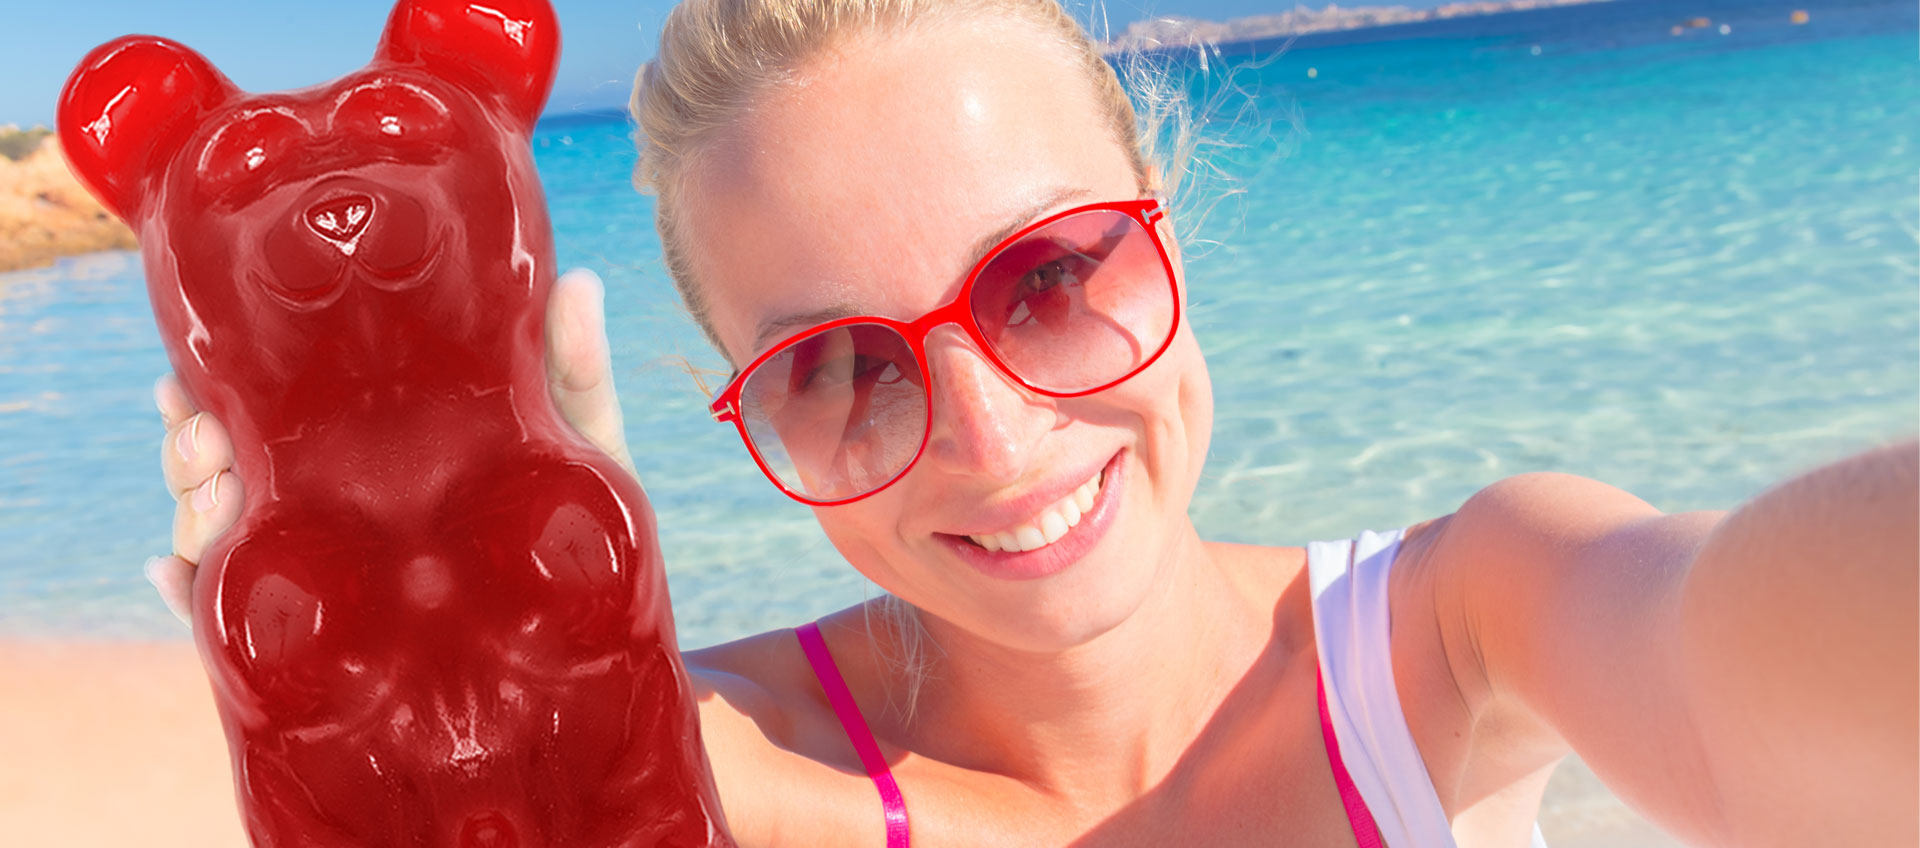 Worlds Largest Gummi Bears And Giant Gummy Bears The Original